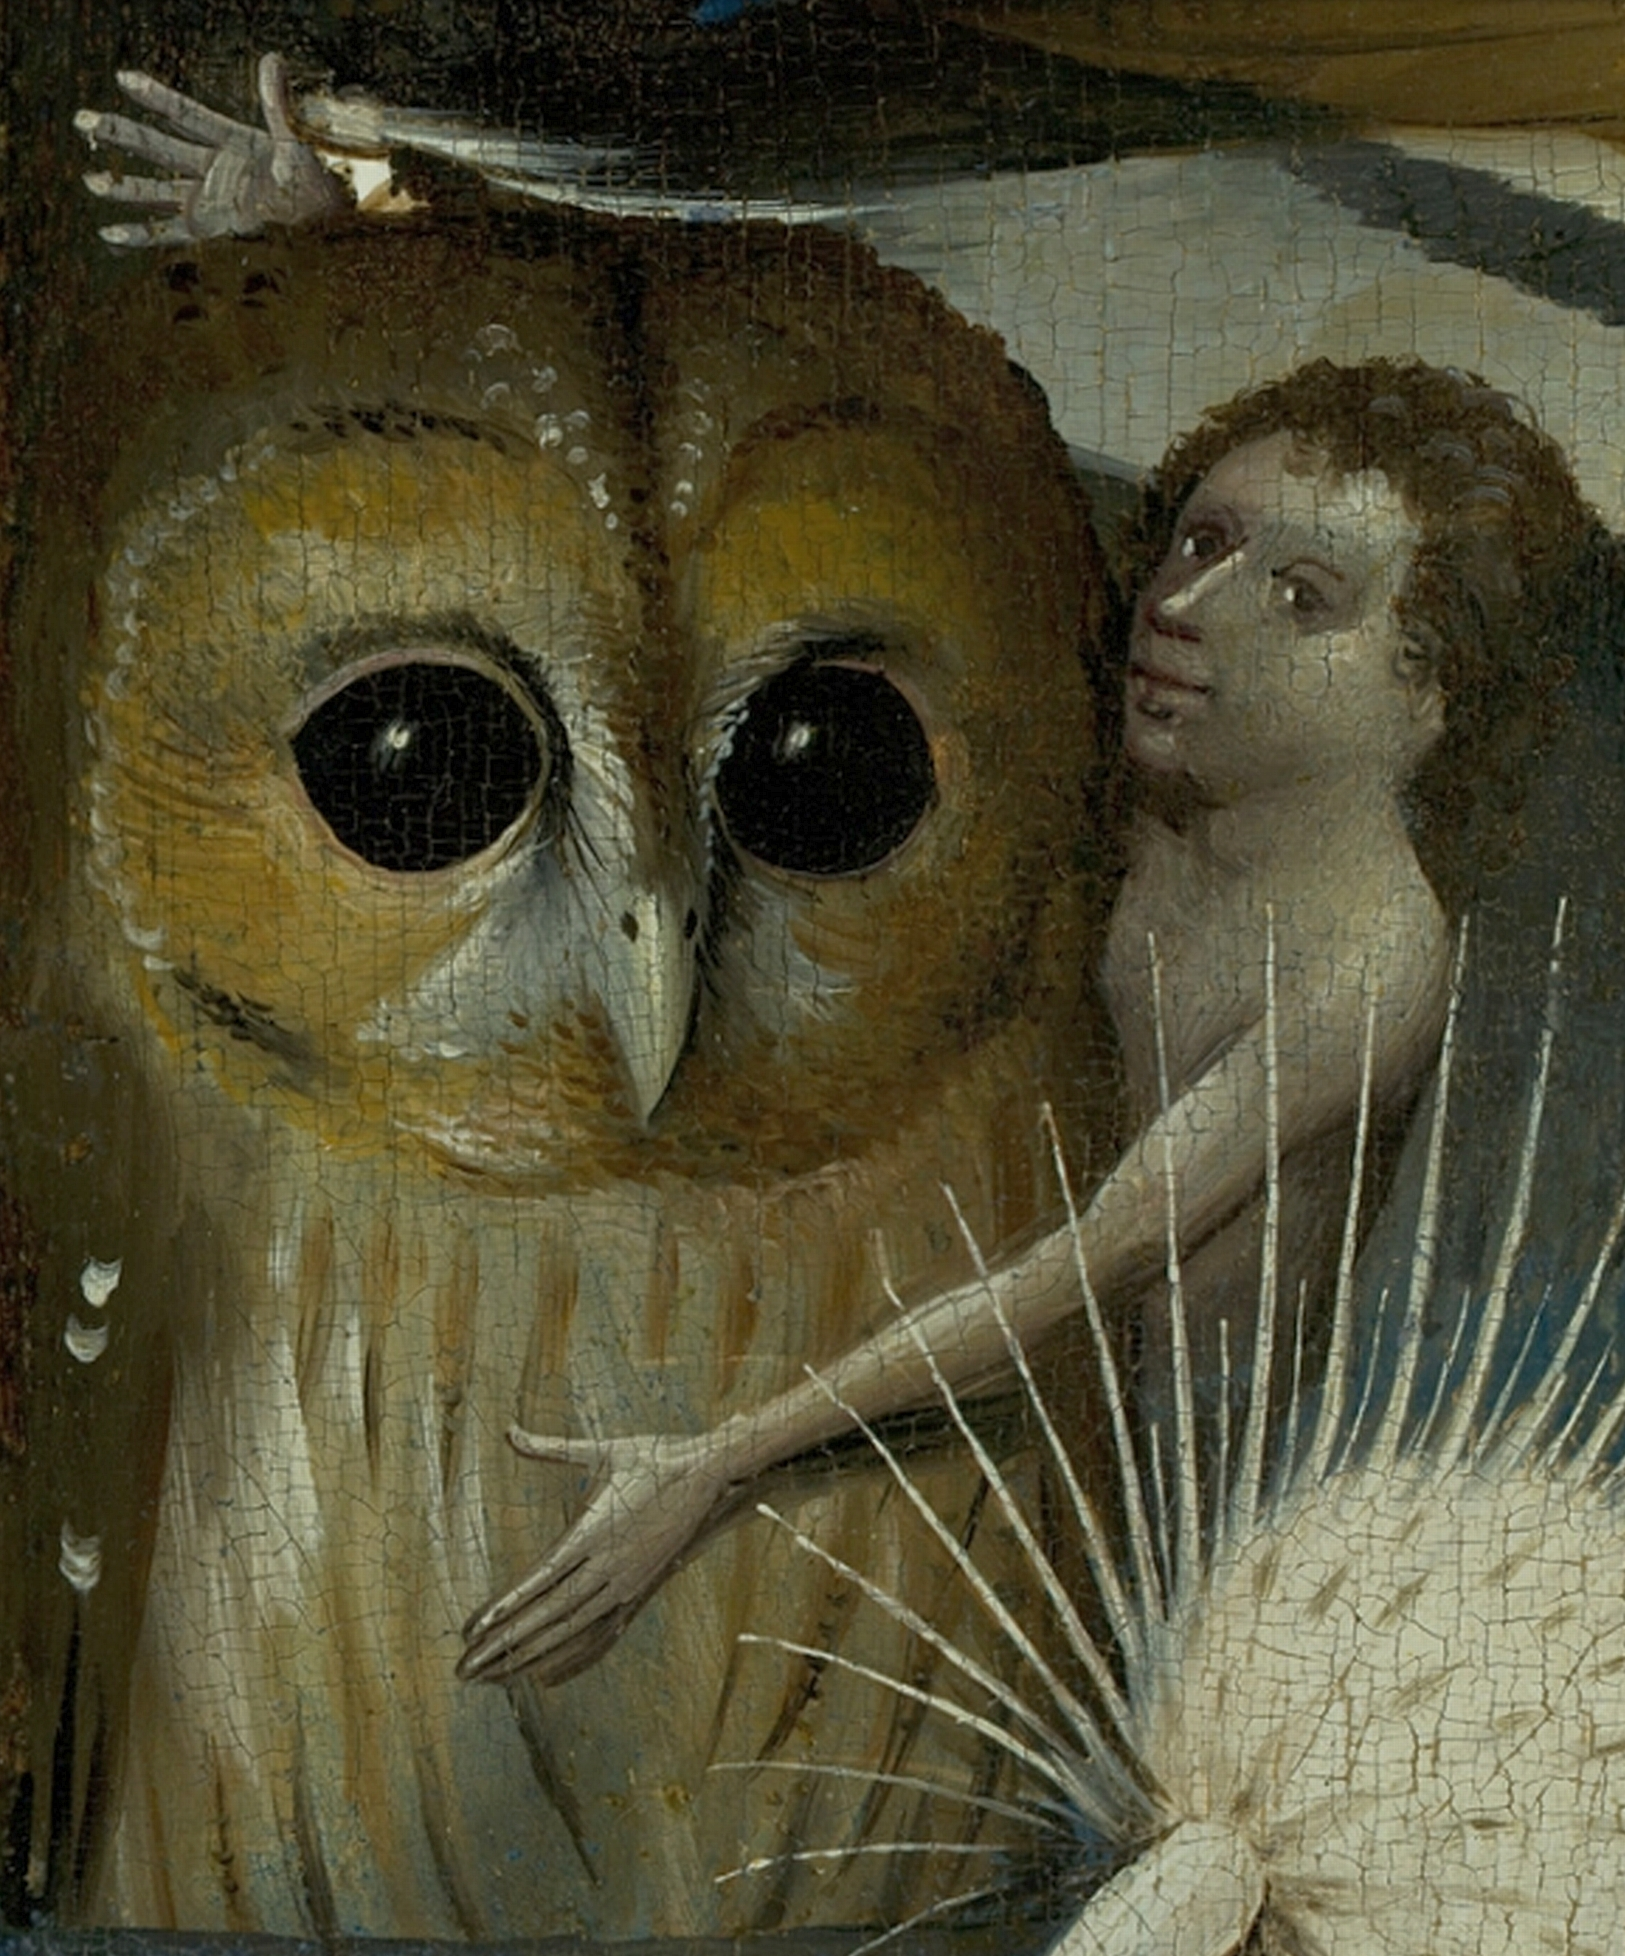 Hieronymus Bosch, new film on ancient painter Bosch,_Hieronymus_-_The_Garden_of_Earthly_Delights,_central_panel_-_Detail_Owl_with_boy